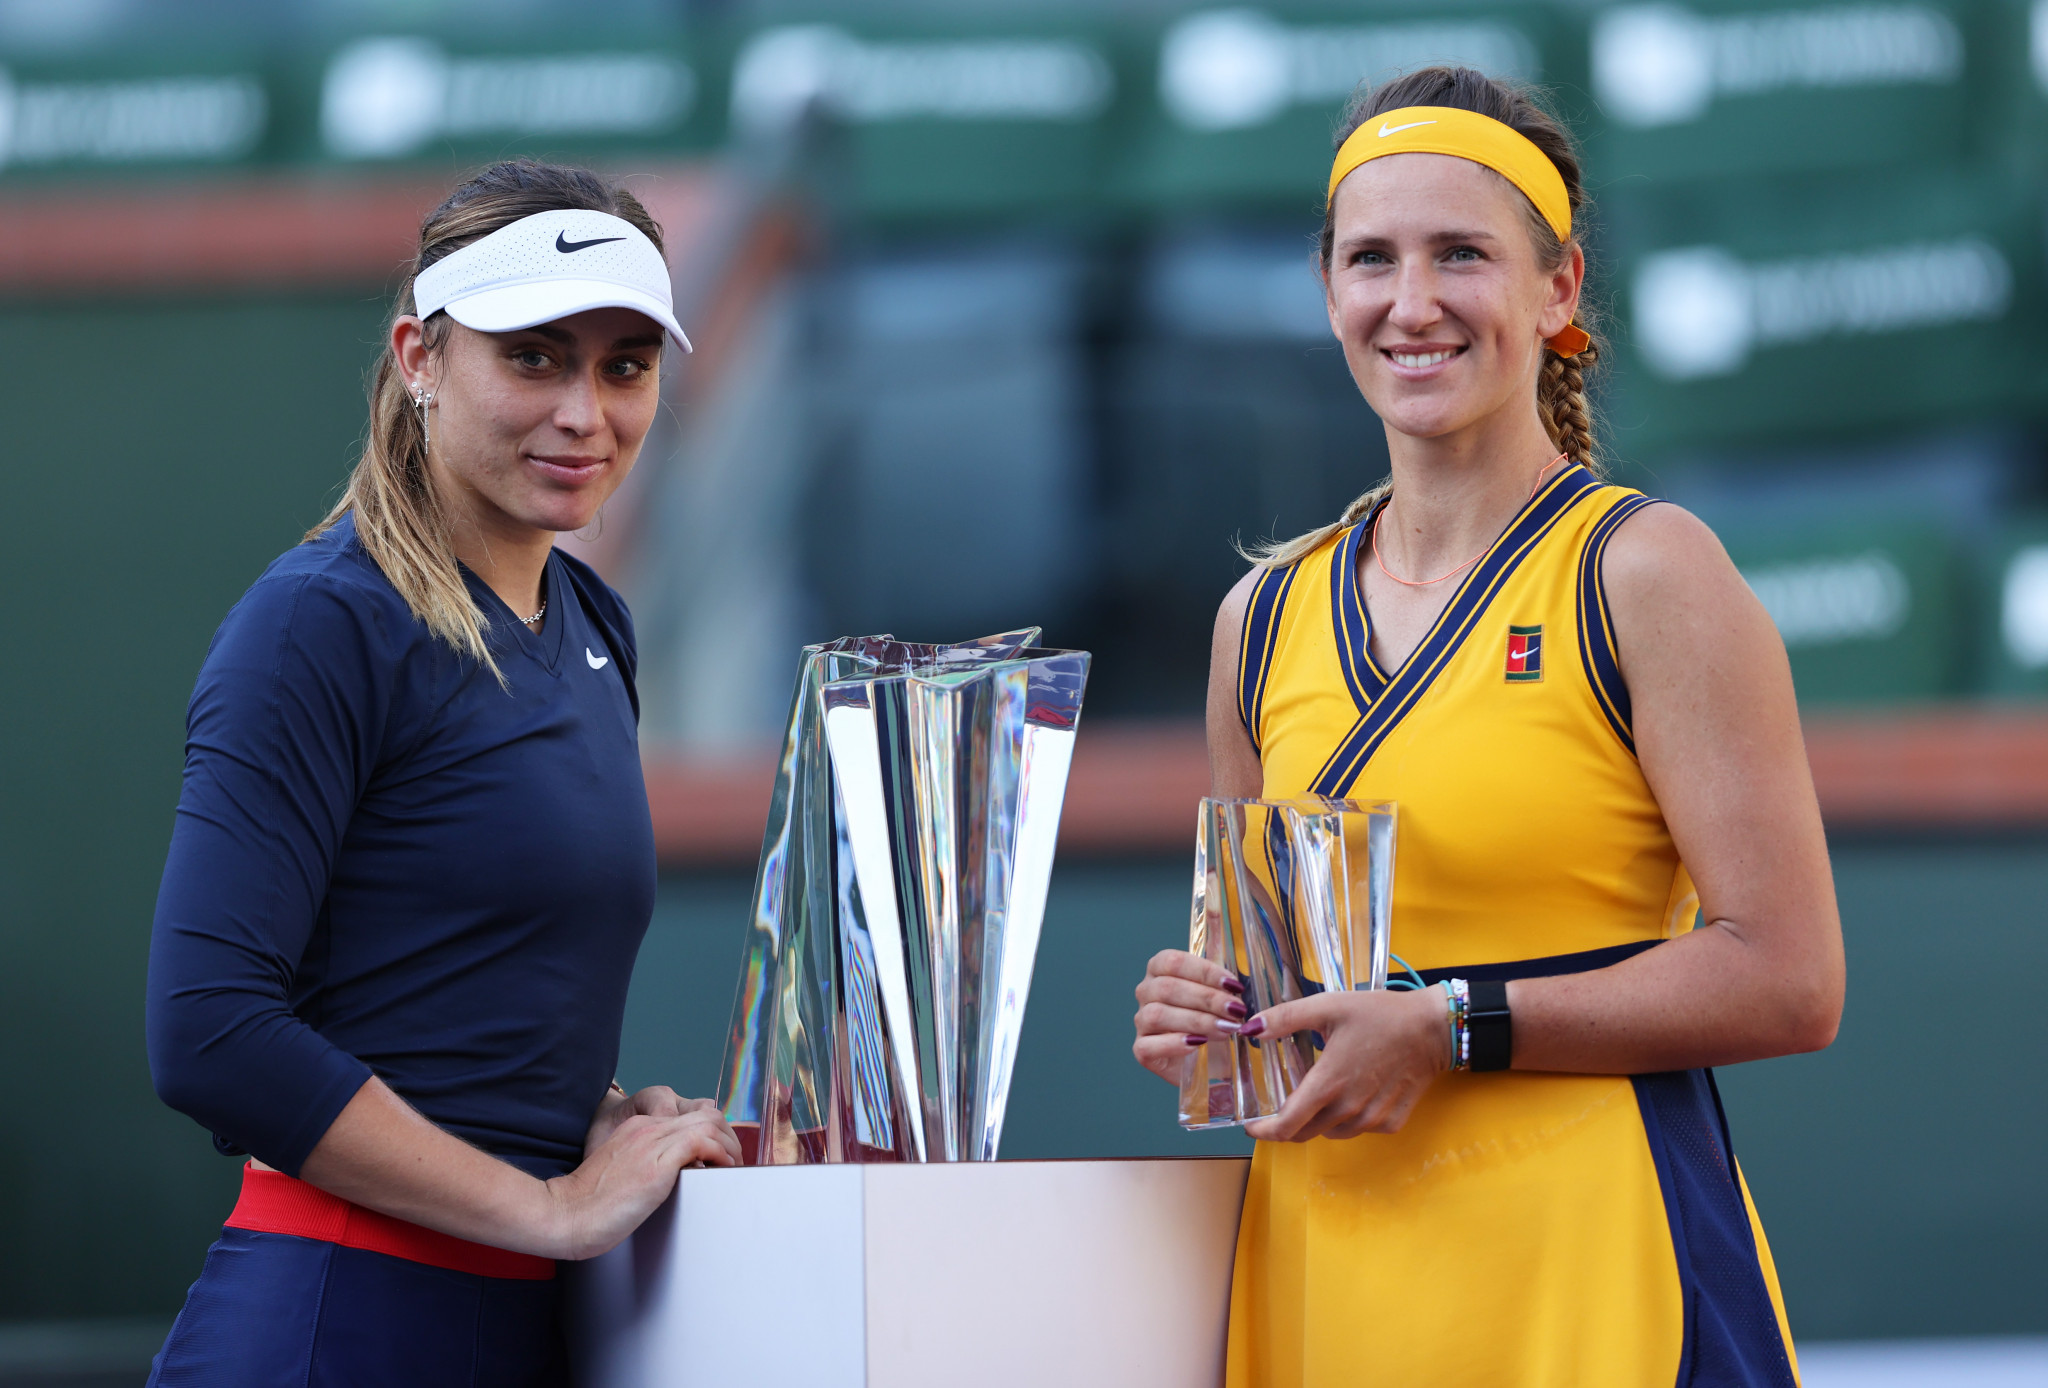 Badosa denies Azarenka historic third women's singles Indian Wells Masters title as Norrie wins first ATP Masters 1000 event